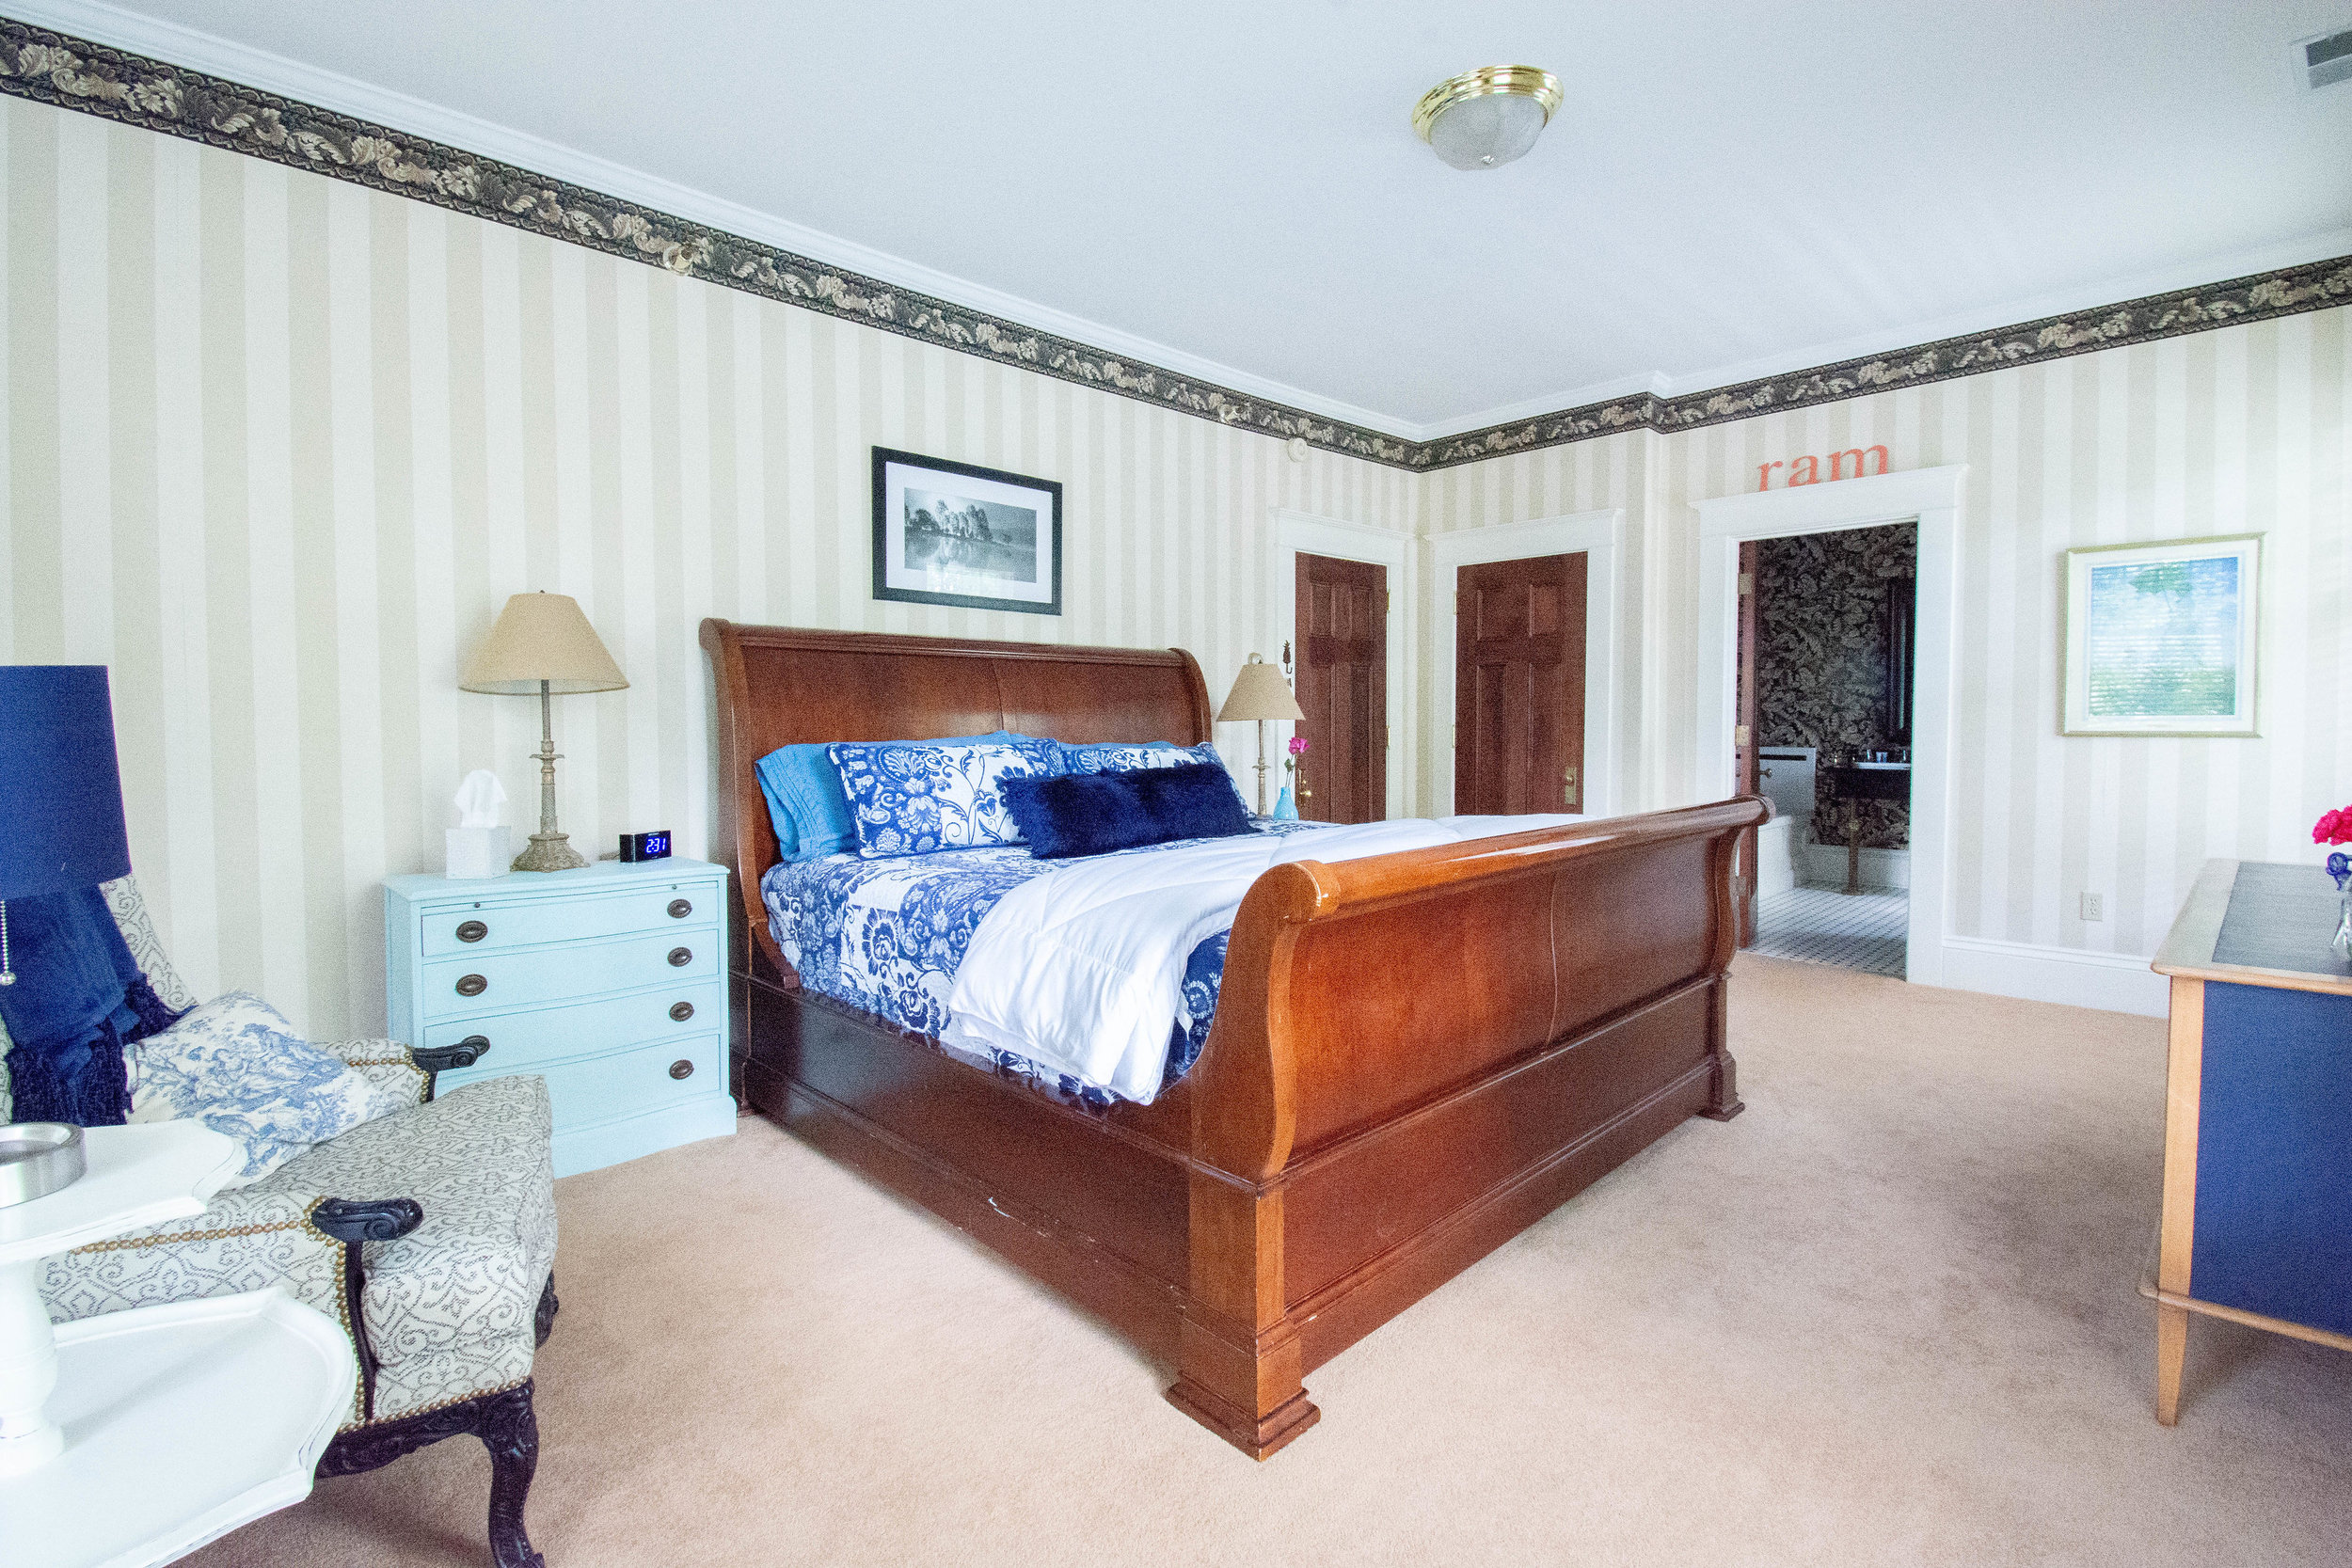 "<img alt= ""full view of room from left side of bed including view into bathroom and hall"" />"